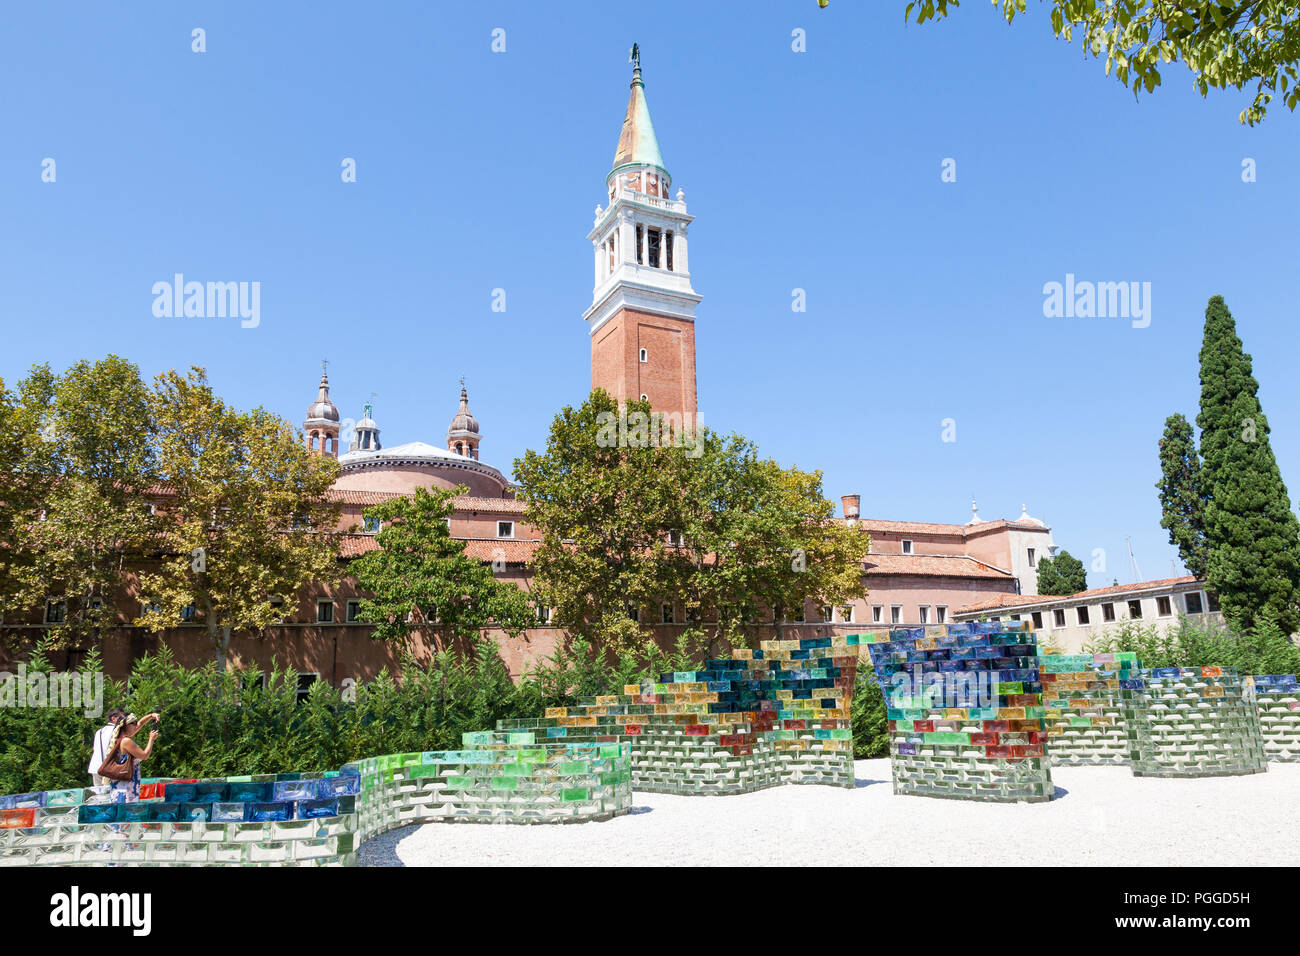 Qwalala glass wall by American artist Pae White for Biennale, Venice, Italy on San Giorgio Maggiore Island with the campanile of the church, tourists  - Stock Image